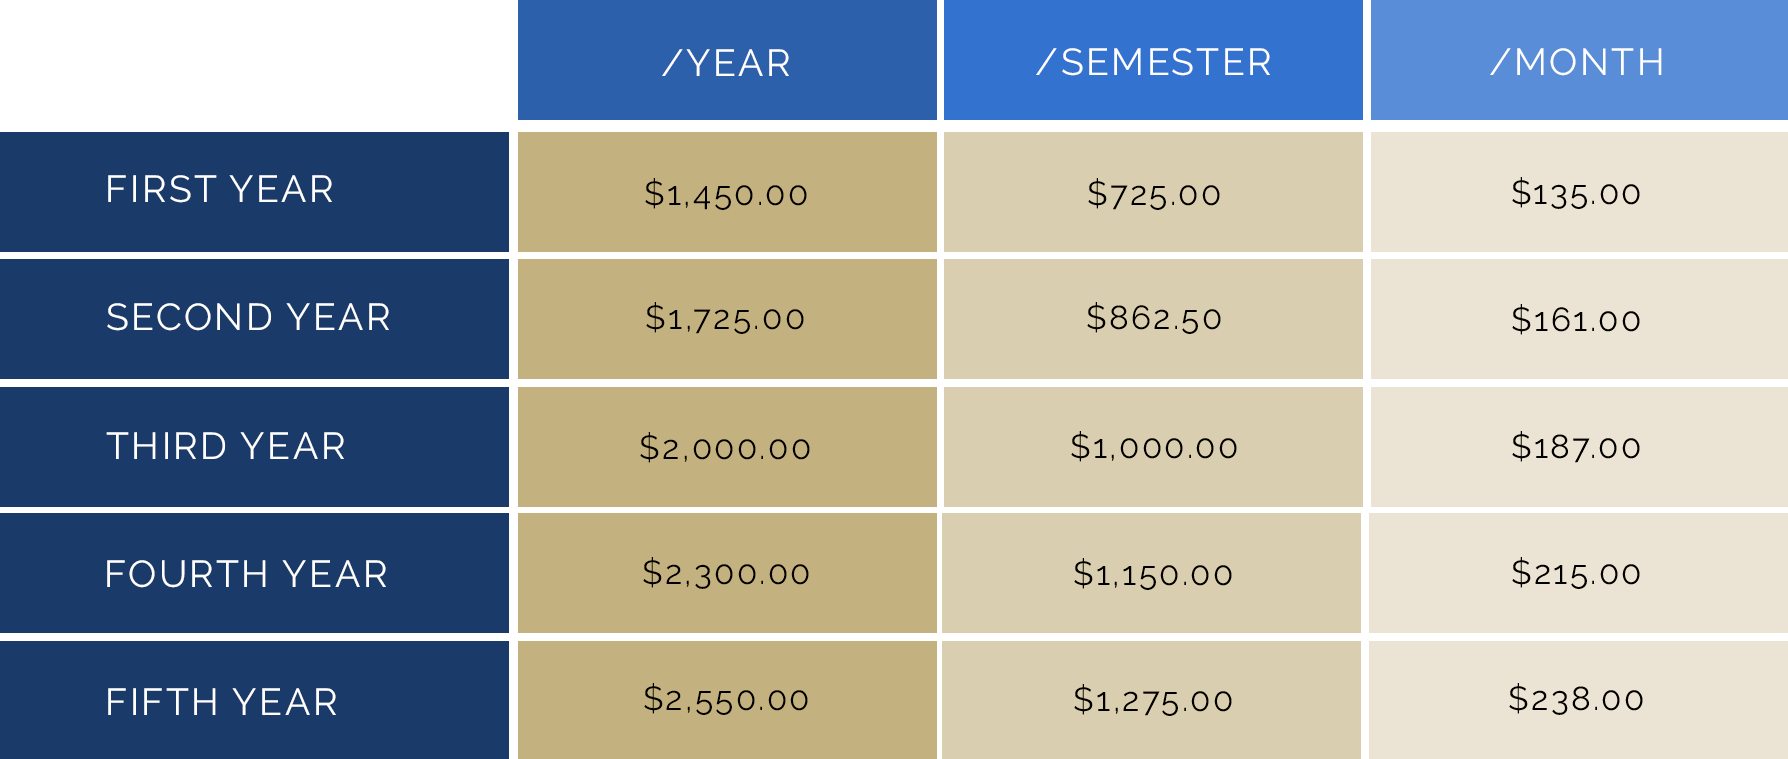 I-TAP Tuition Fee Table